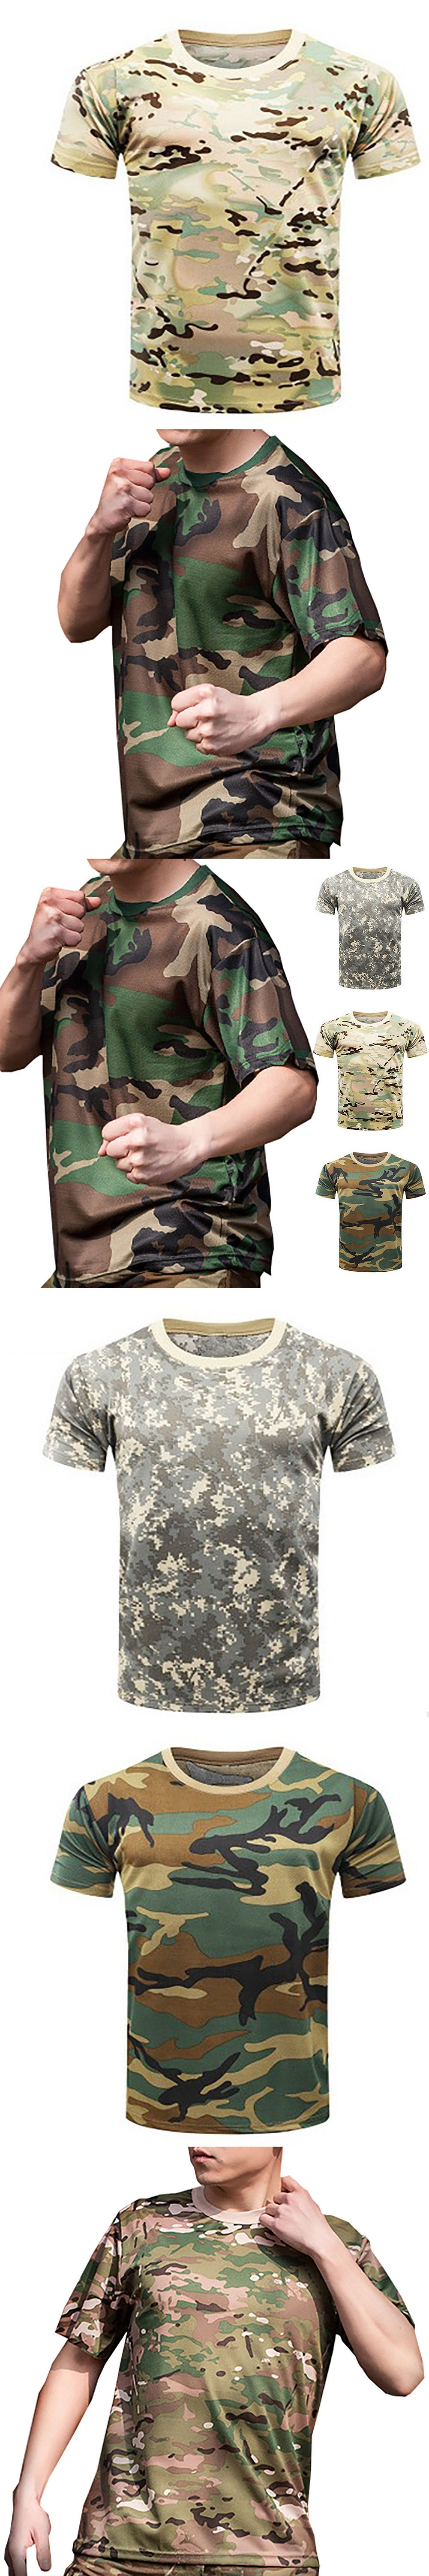 38e62ba1 New Camouflage T-shirt Men Breathable Army Tactical Combat T Shirt Military  Dry Camo Camp